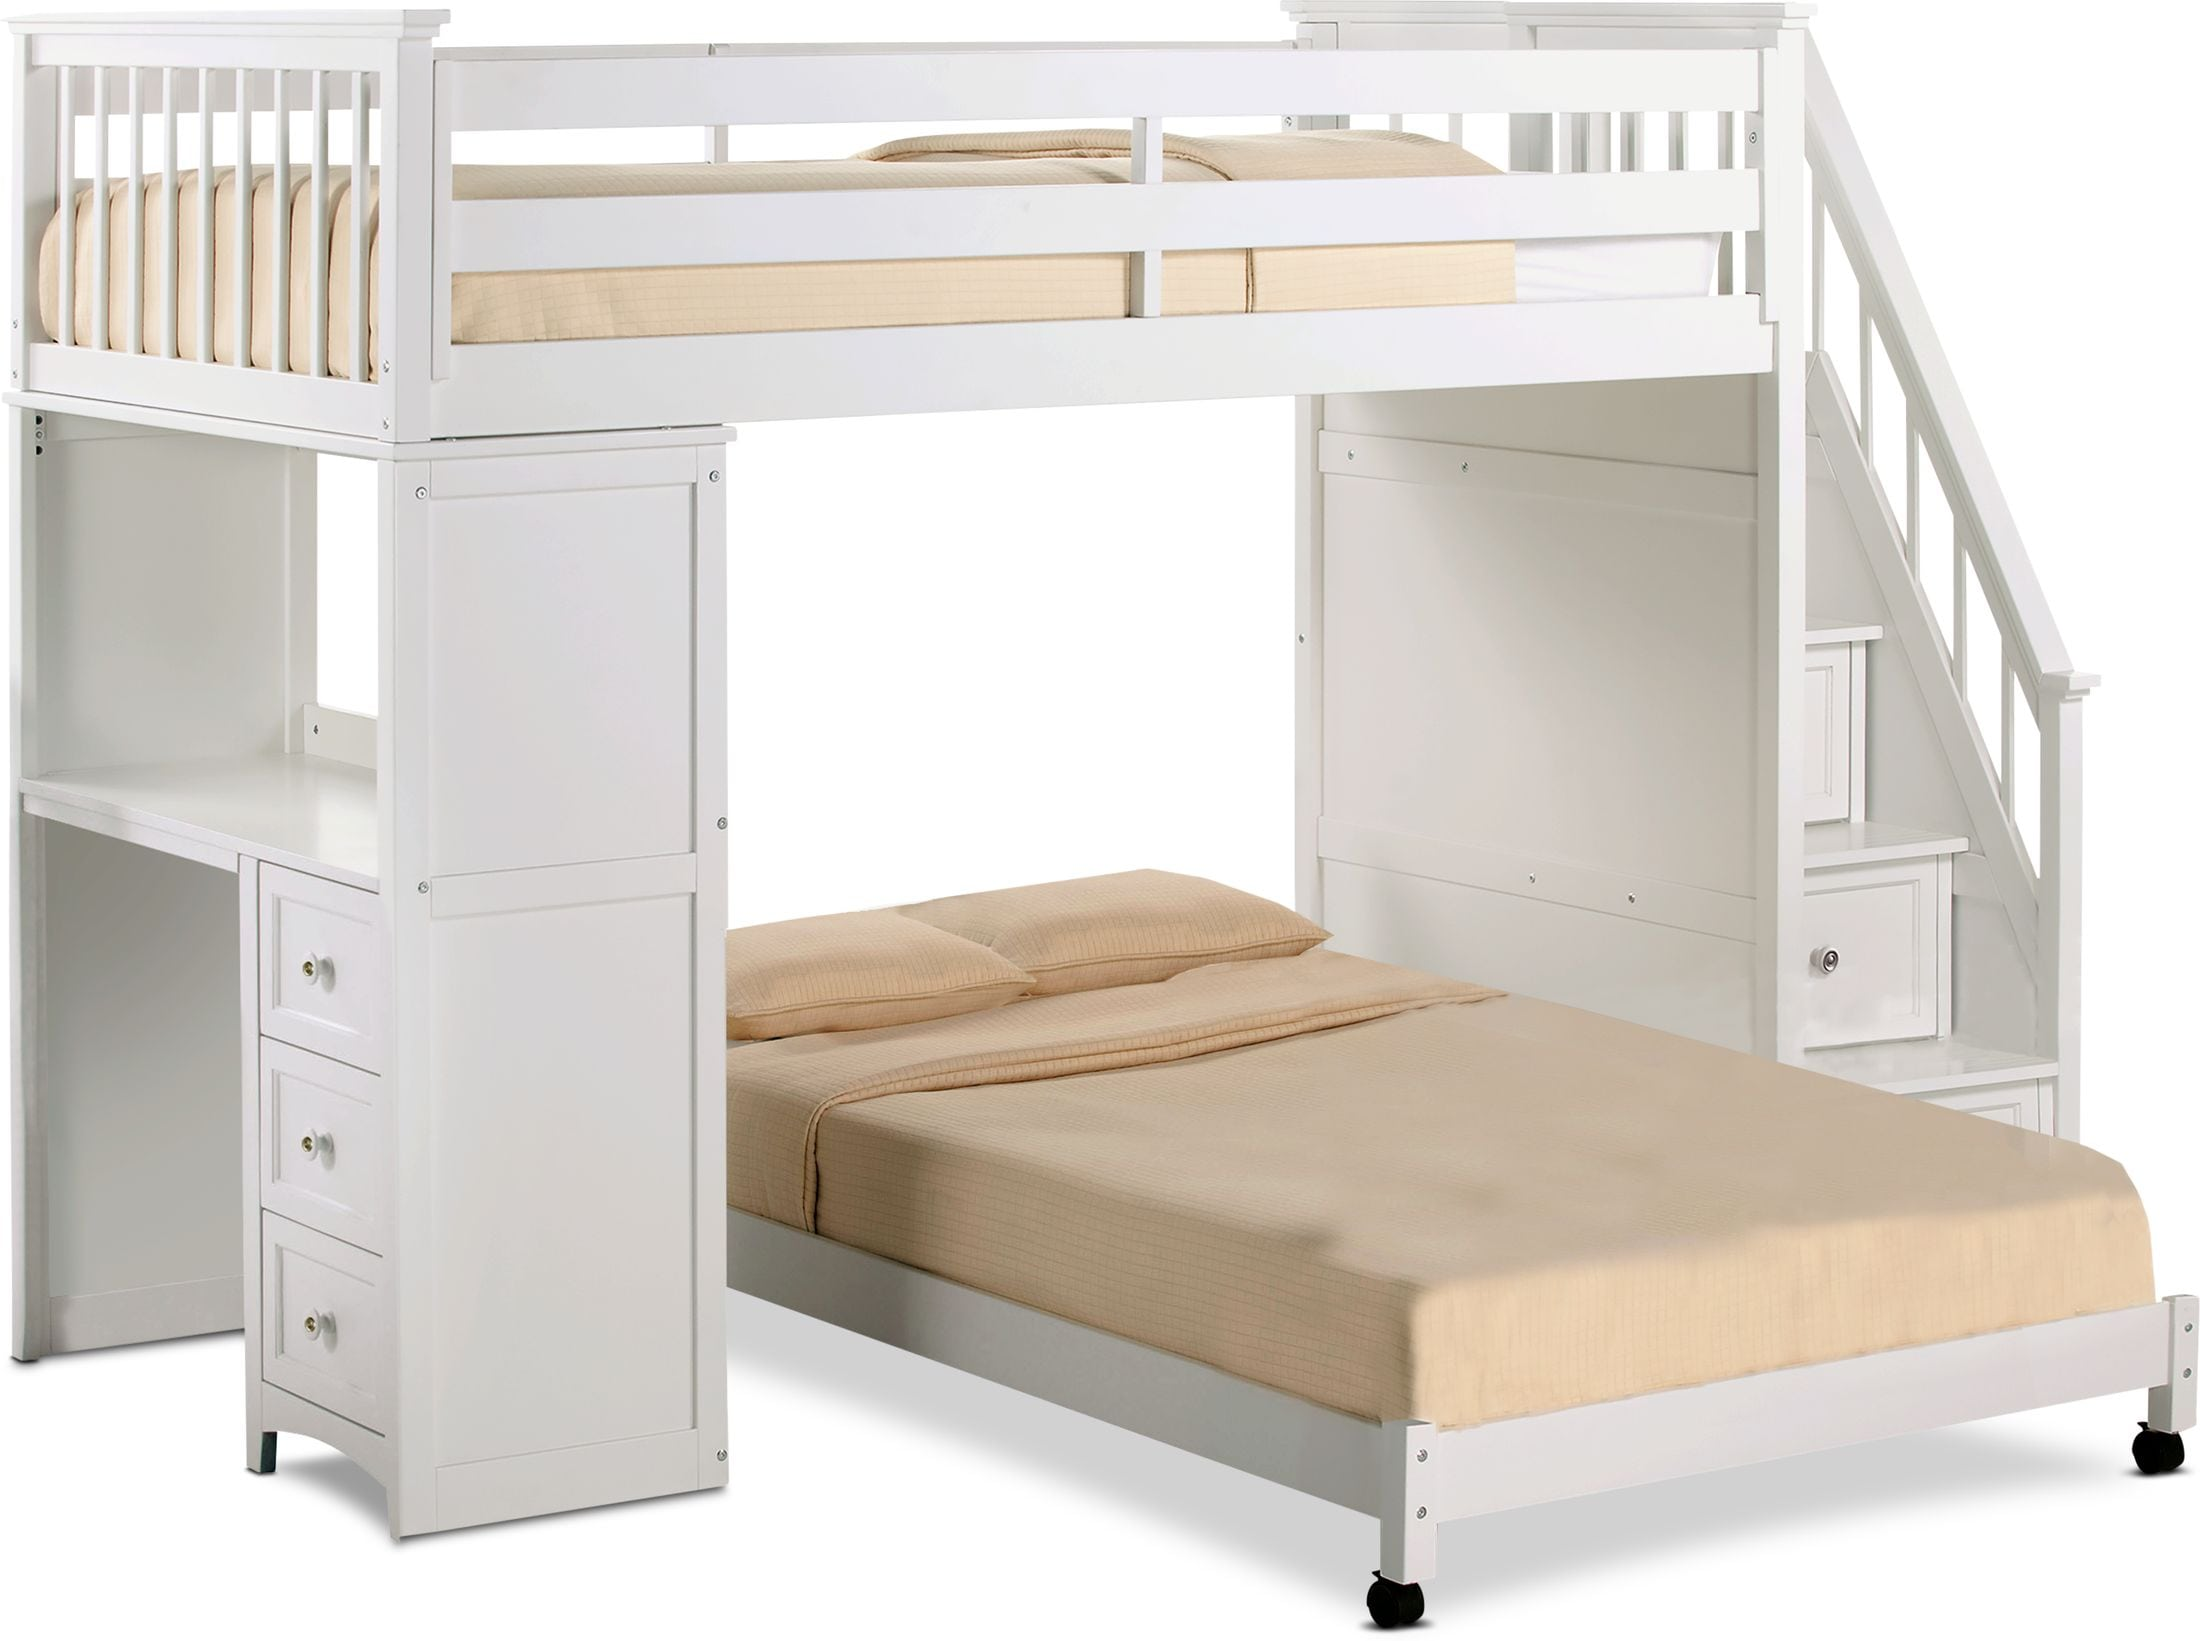 Twin Over Full Bunk Bed With Stairs And Desk Cheaper Than Retail Price Buy Clothing Accessories And Lifestyle Products For Women Men